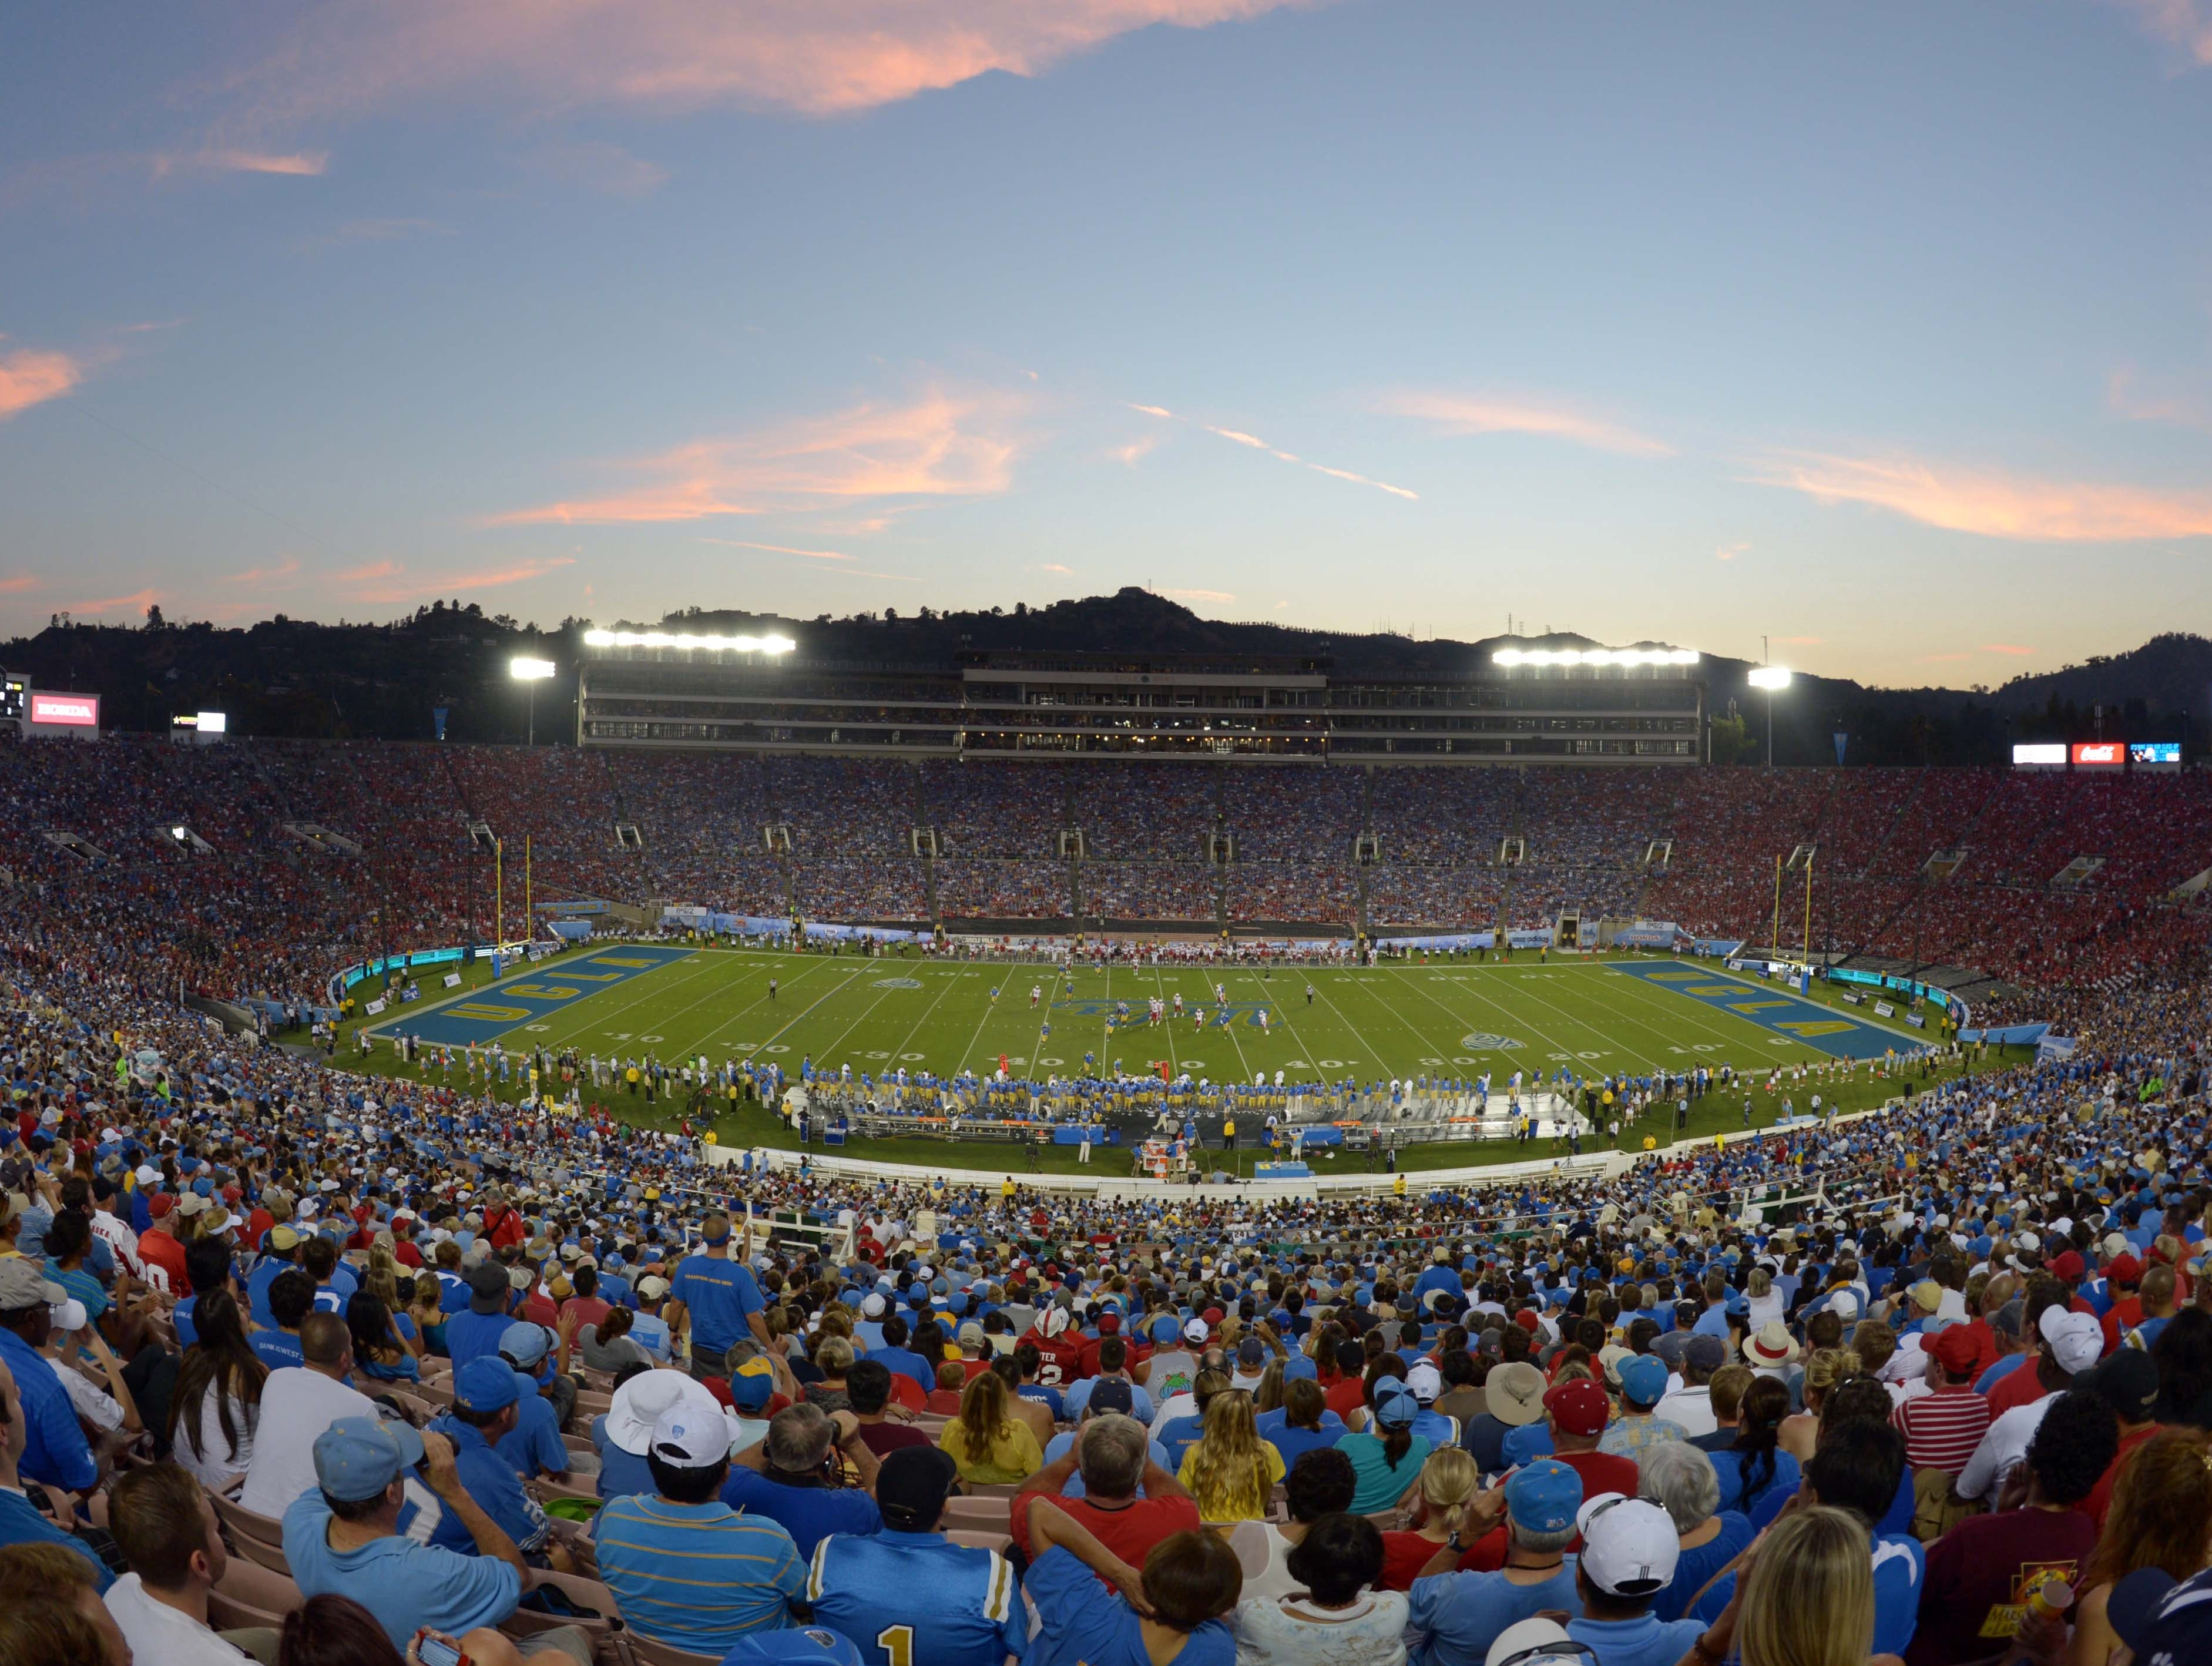 Rose Bowl, UCLA: No scene in college football might be more beautiful than the sun setting over the San Gabriel Mountains during the Rose Bowl with the crowd full of the contrasting colors of each team.